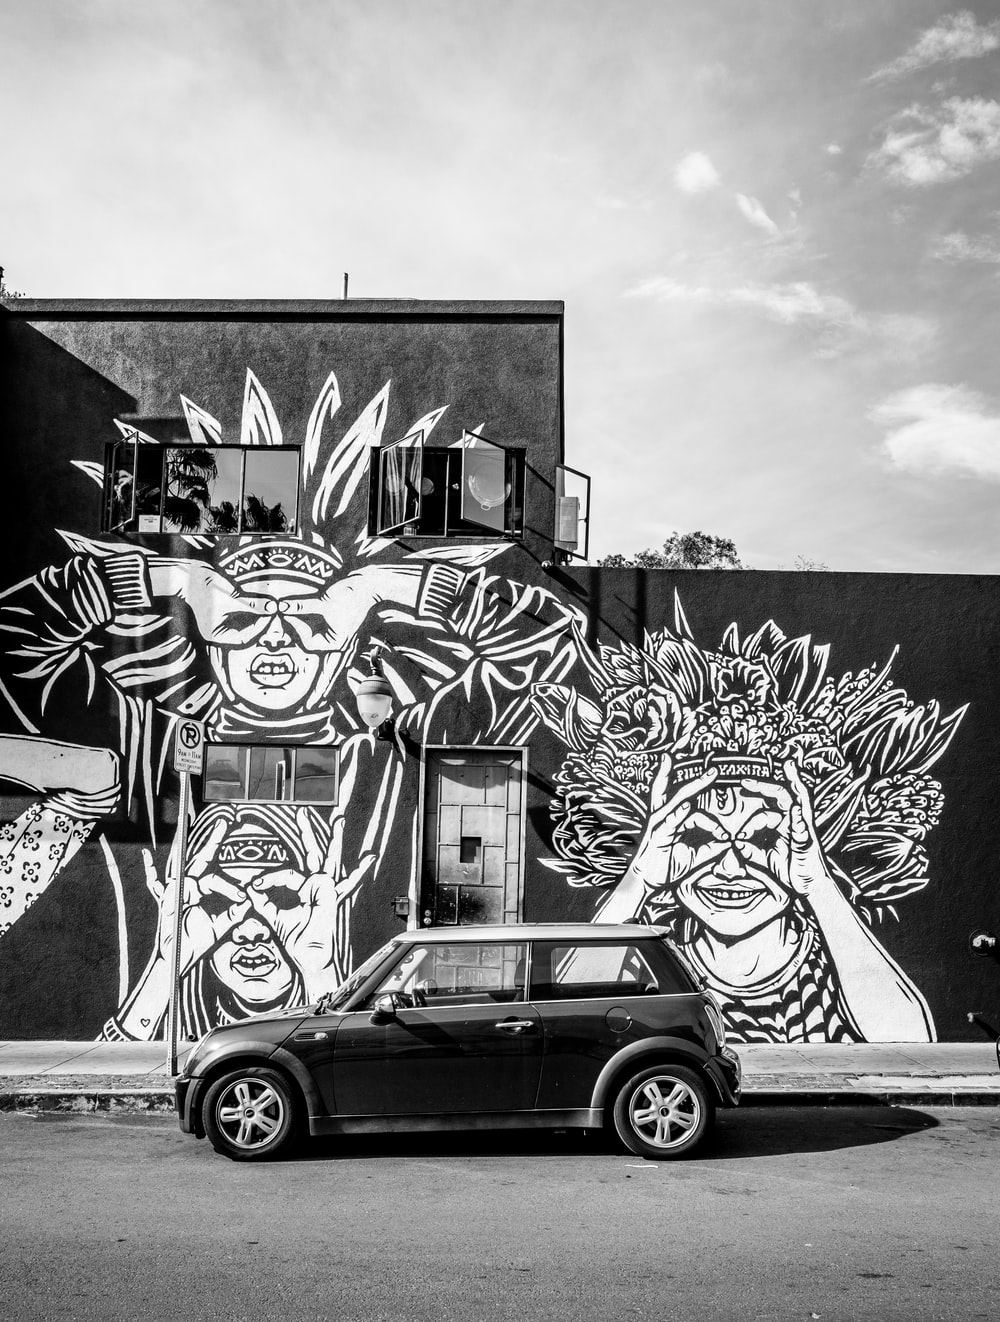 parked car near building with murals